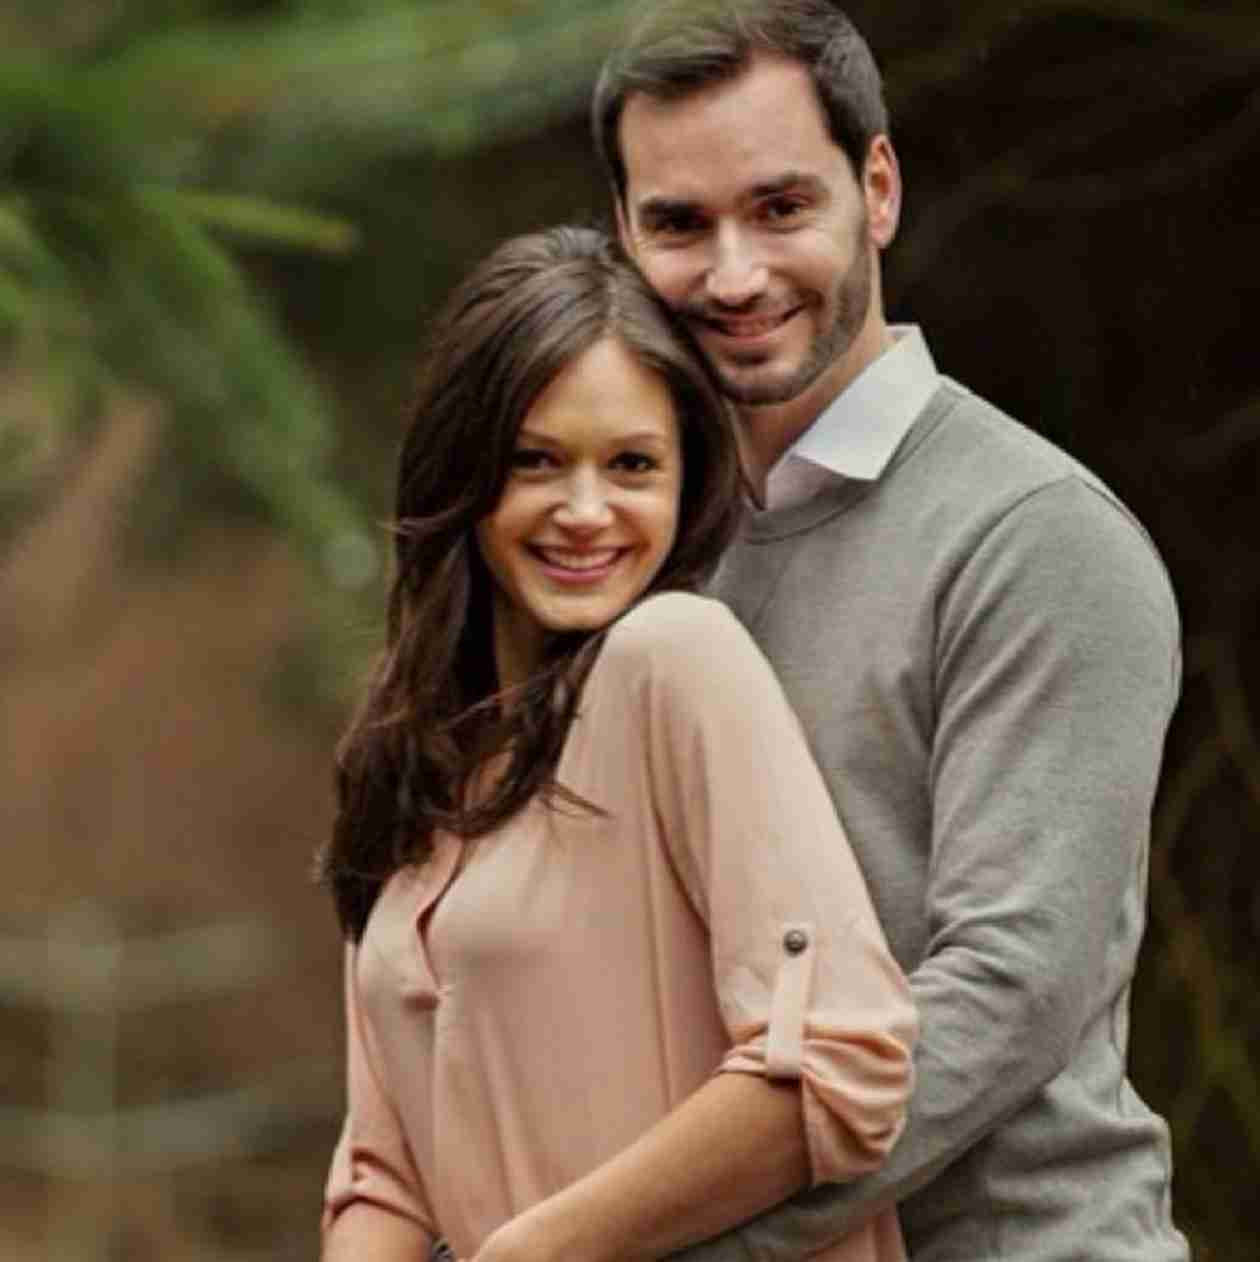 Who Are Desiree Hartsock's Bridesmaids in Her Wedding?